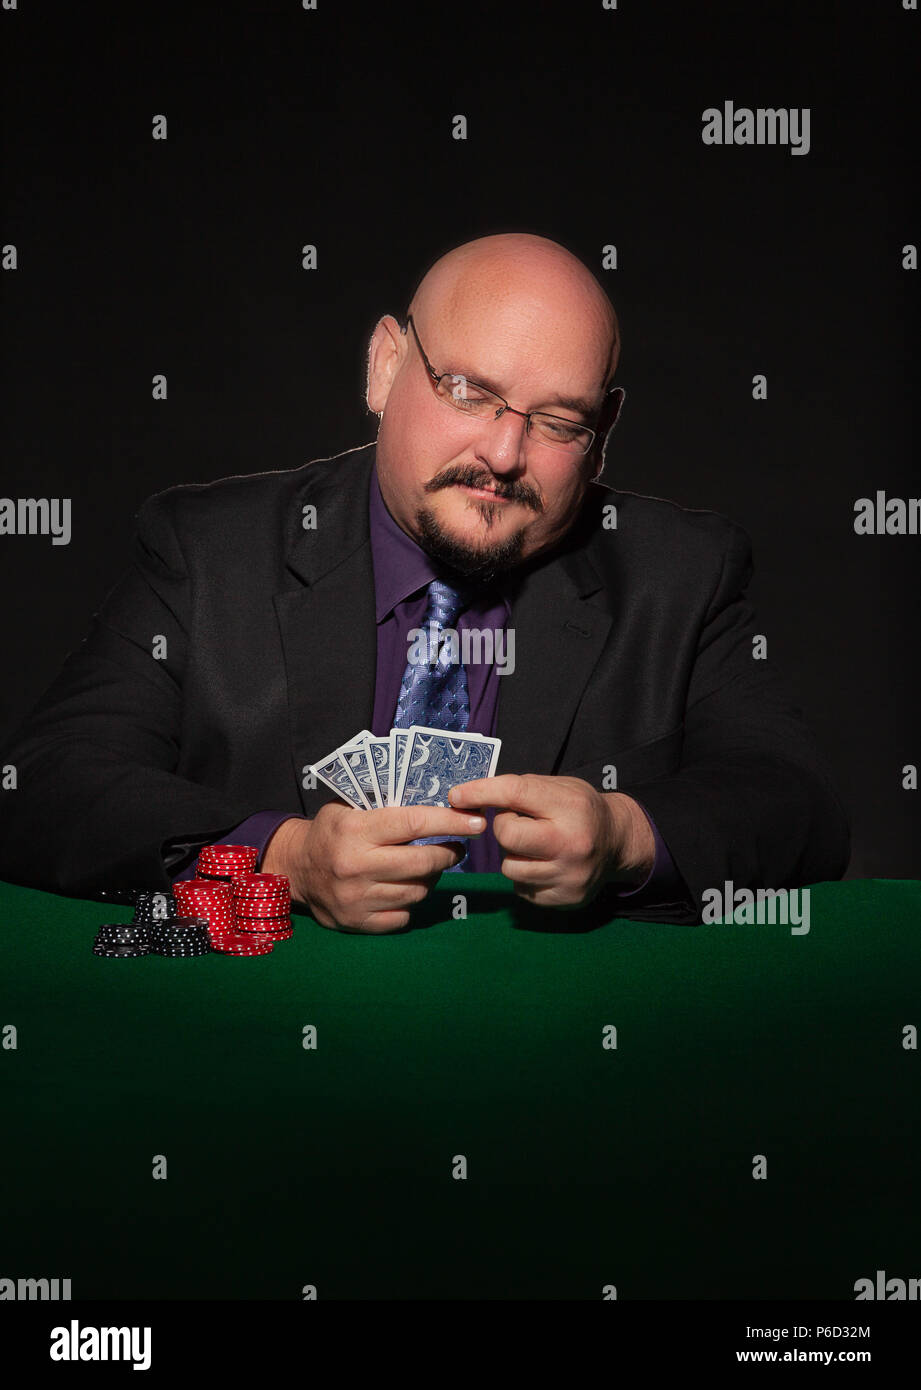 card player in business suit.  Glasses and necktie with gaming chips against black background. - Stock Image